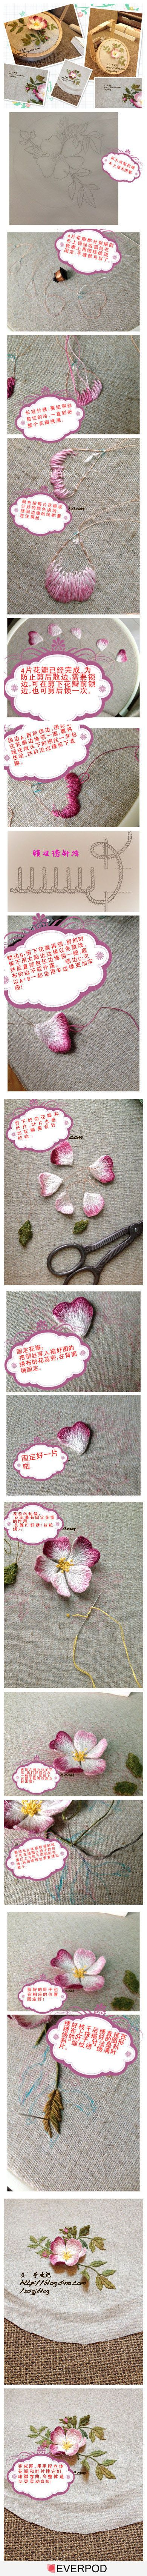 Really want to try this..  Use wire for the initial outline to keep shape after cutting fabric,